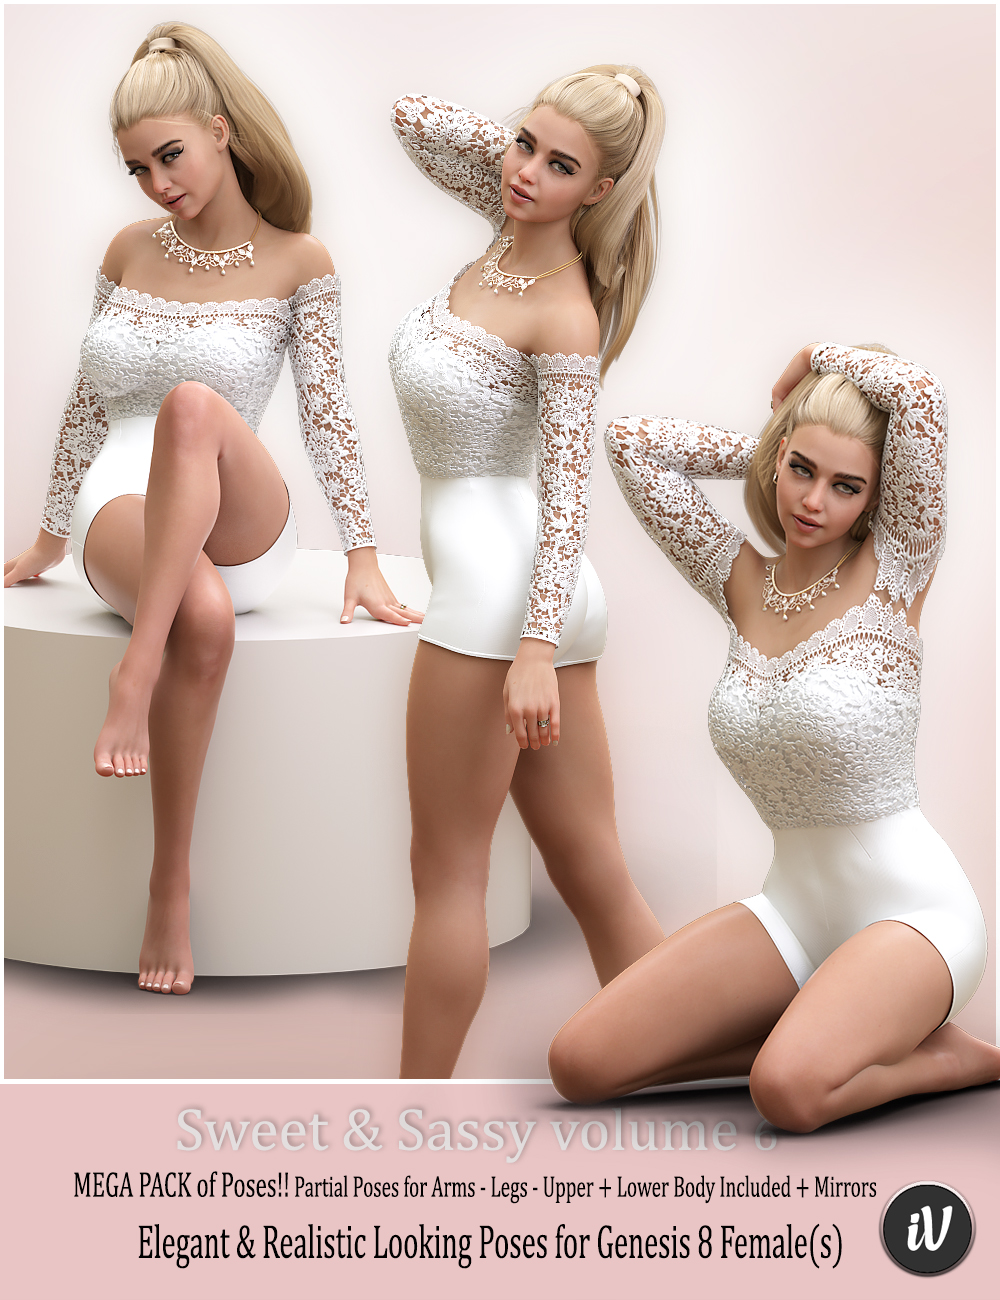 iV Sweet & Sassy Vol. 6 Pose Collection for Genesis 8 Female(s) by: i3D_LotusValery3D, 3D Models by Daz 3D